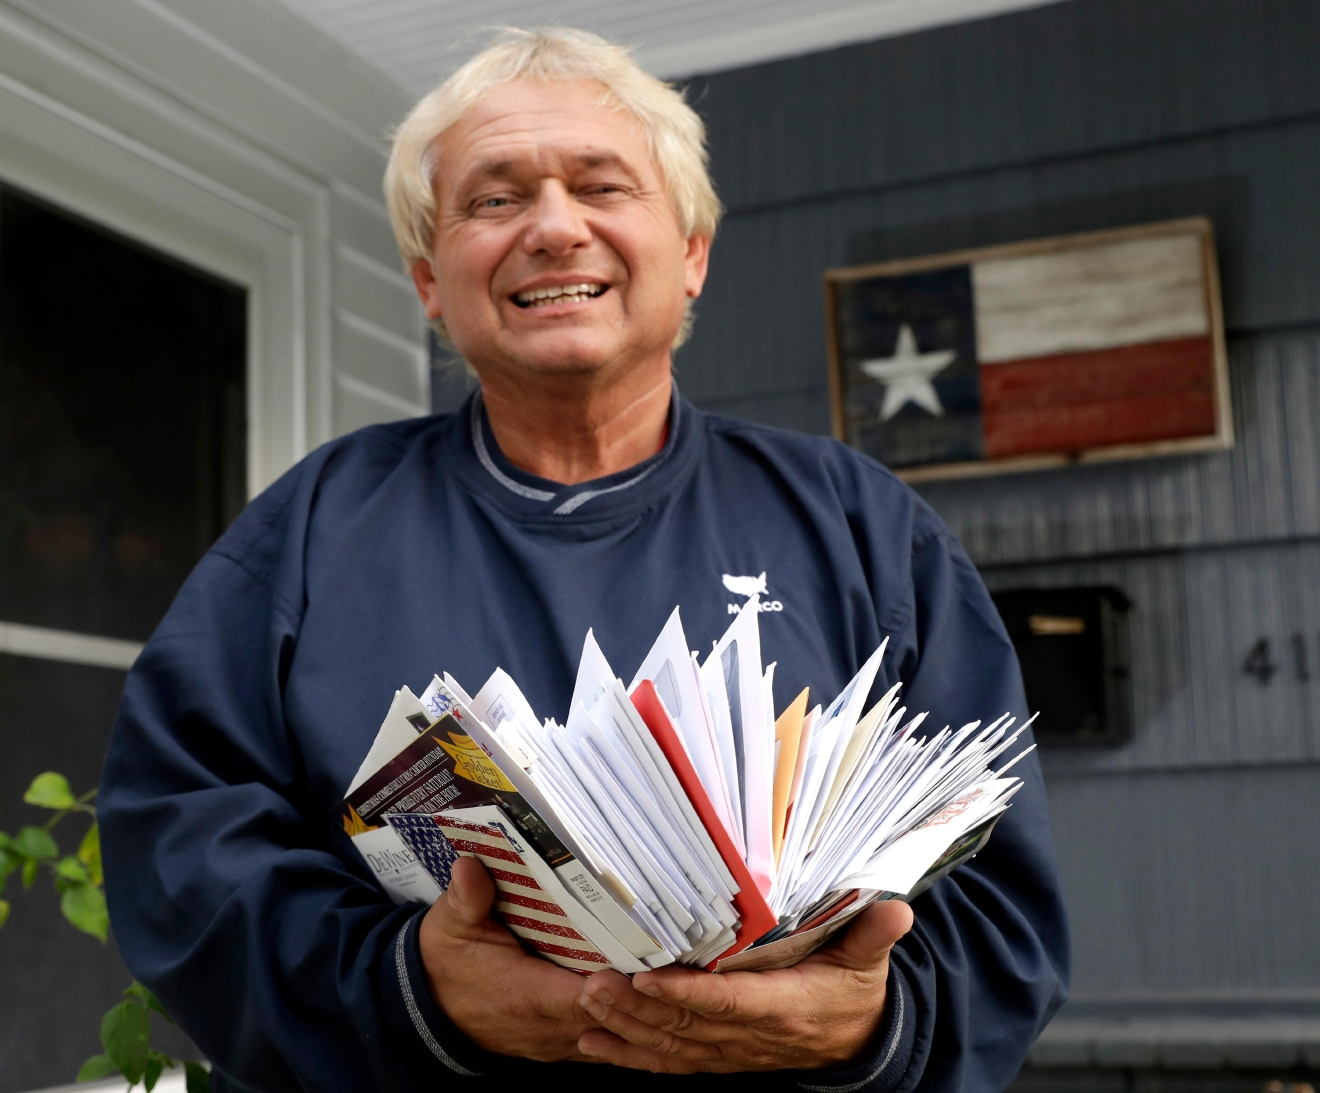 Rex Teter, a member of the Electoral College, holds two days of delivered mail at his home in Pasadena, Texas, Tuesday, Dec. 13, 2016. And you thought Election Day was in November. Electors are gathering in every state Dec, 19, to formally elect Donald Trump president even as anti-Trump forces try one last time to deny him the White House. Republican electors say they have been deluged with emails, phone calls and letters urging them not to support Trump. Many of the emails are part of coordinated campaigns. (AP Photo/David J. Phillip)